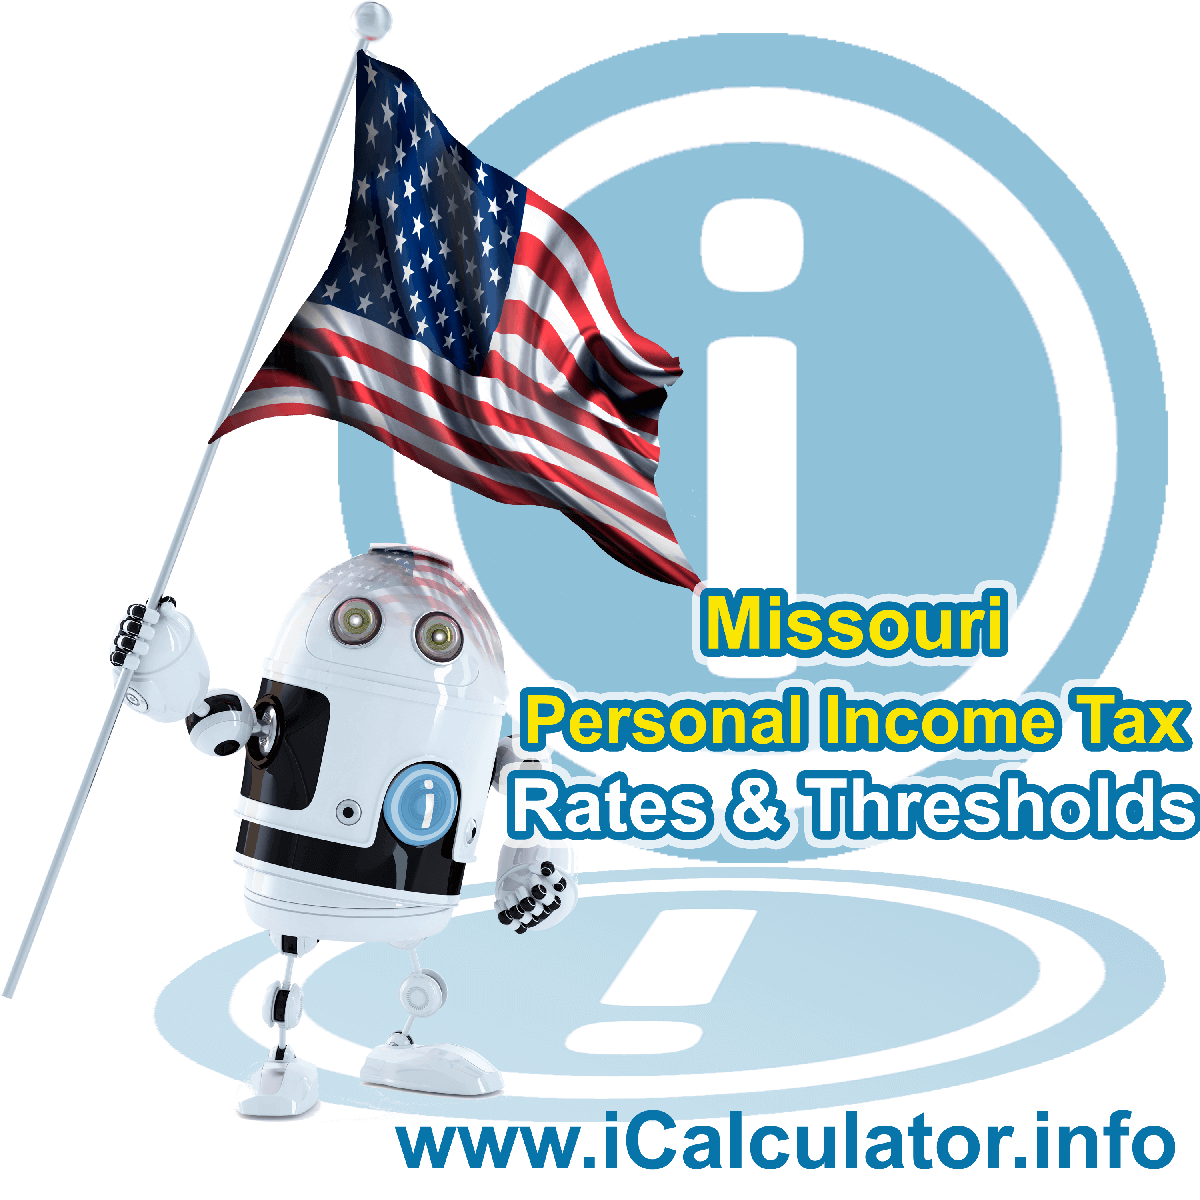 Missouri State Tax Tables 2018. This image displays details of the Missouri State Tax Tables for the 2018 tax return year which is provided in support of the 2018 US Tax Calculator